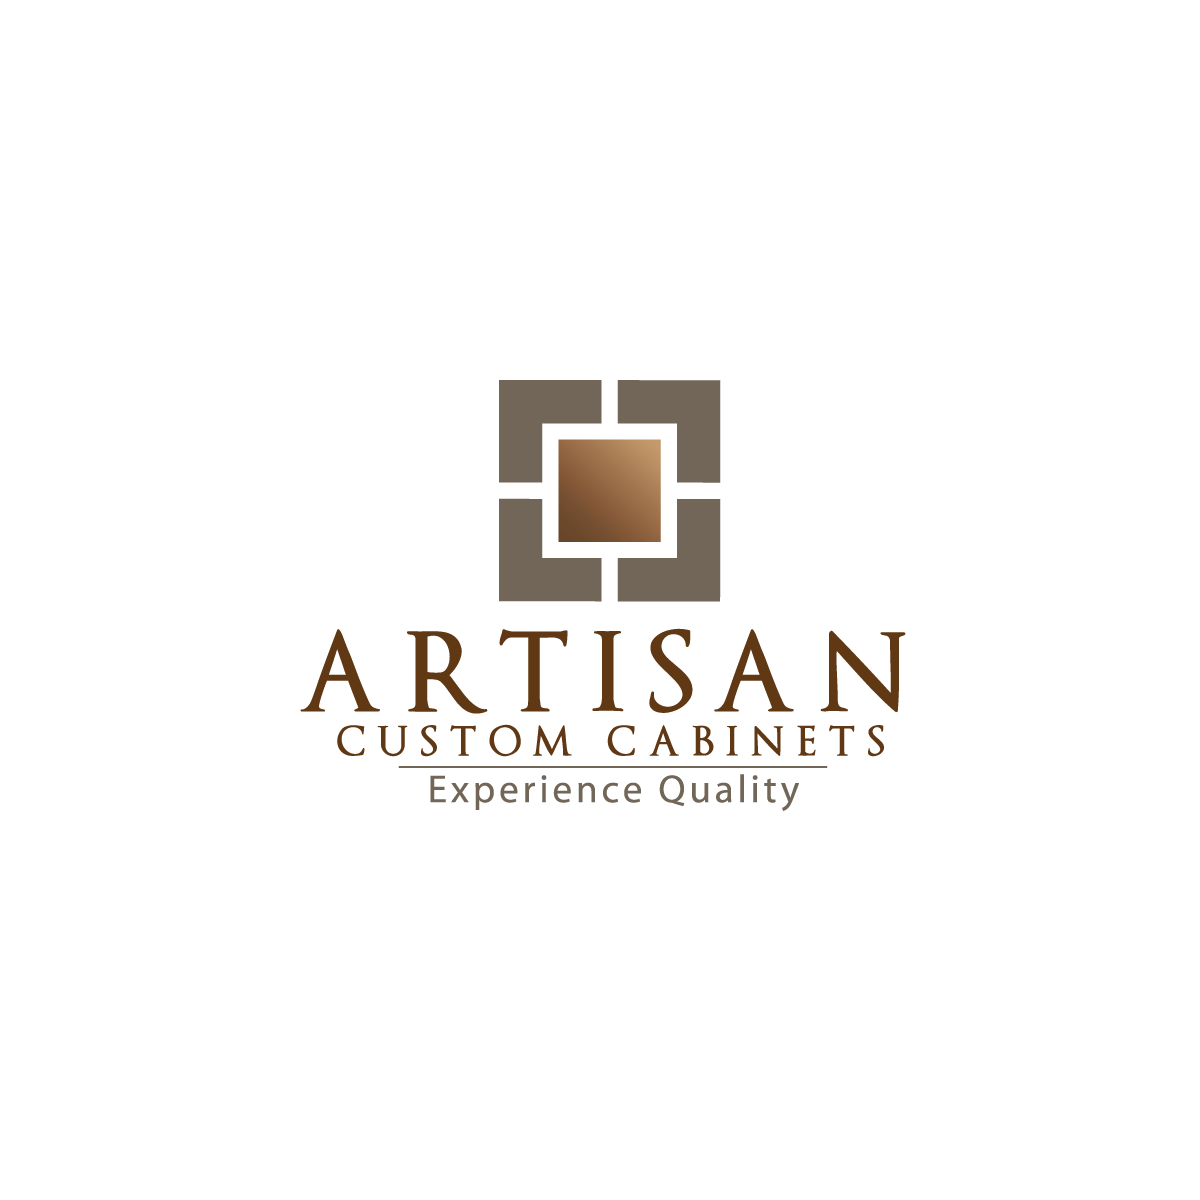 Logo Design by rockin - Entry No. 71 in the Logo Design Contest Creative Logo Design for Artisan Custom Cabinets.